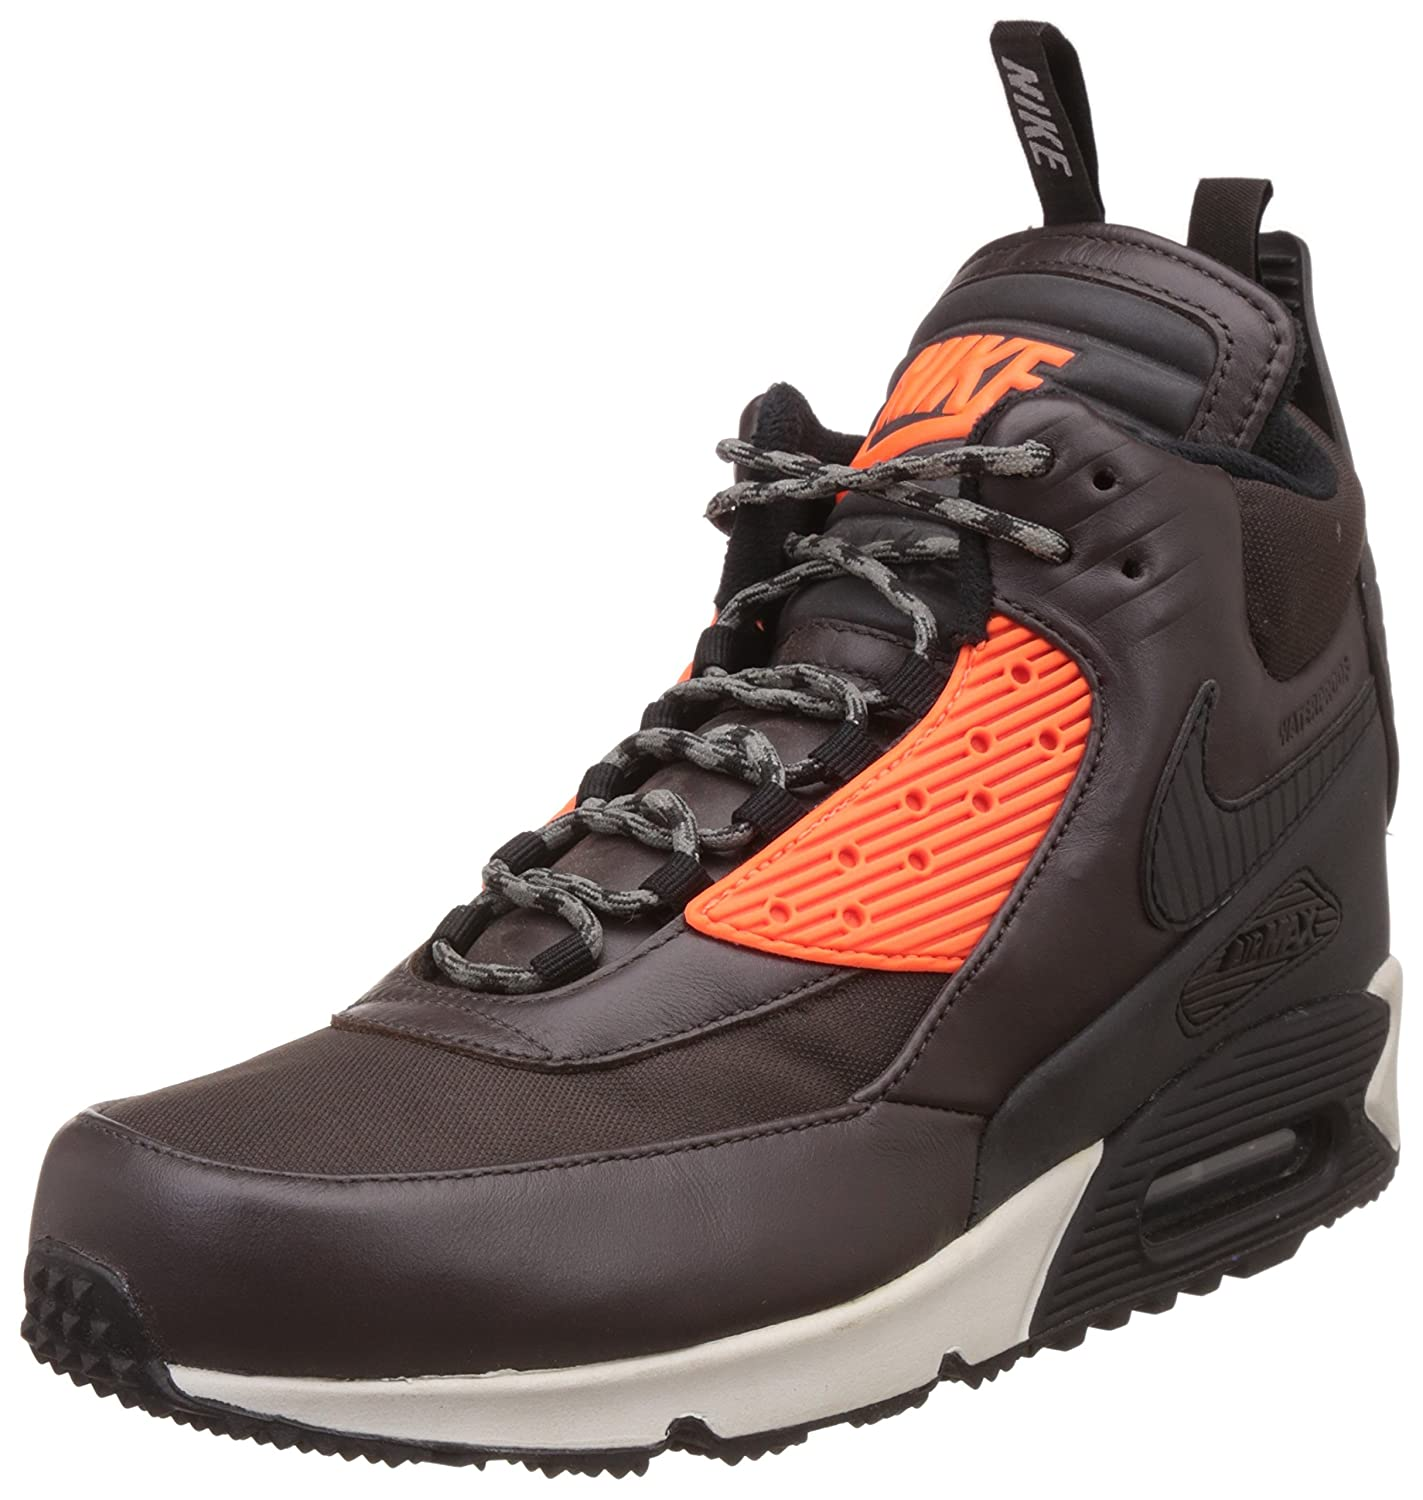 5984456b1a9109 wholesale amazon nike mens air max 90 sneakerboot boots sneakers shoes  outdoor 61726 2a330